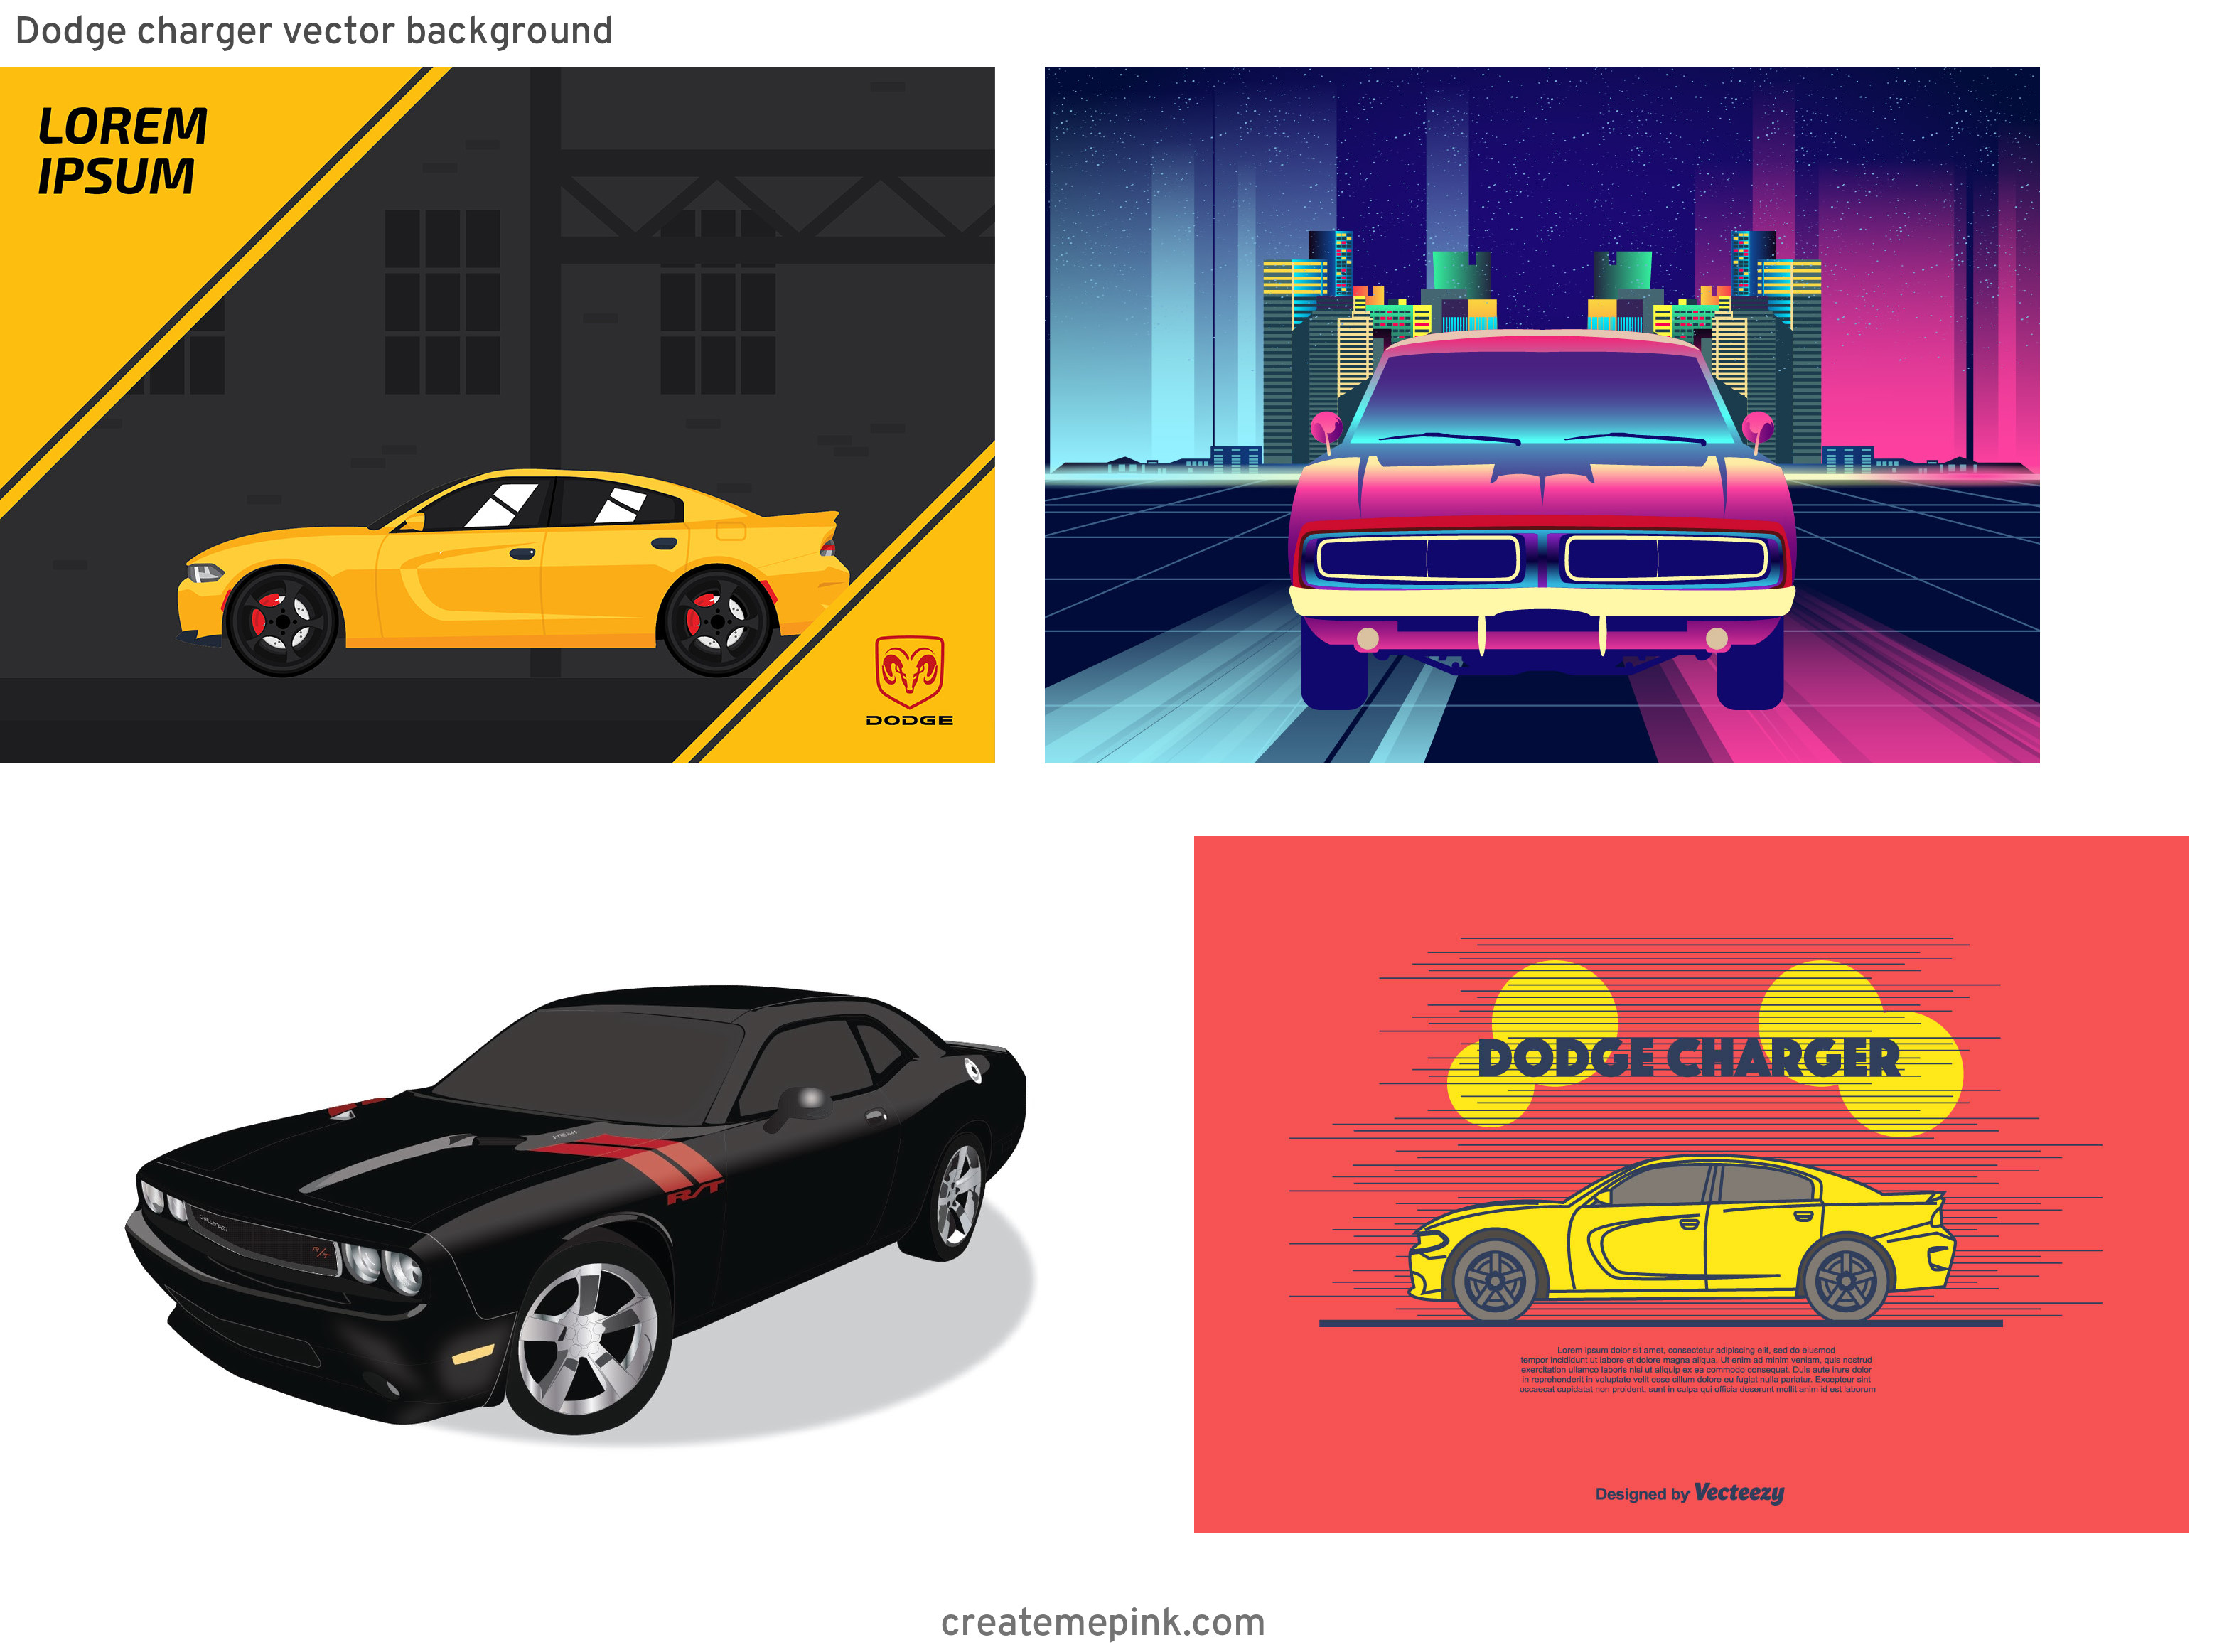 Dodge Charger Vector Graphics: Dodge Charger Vector Background